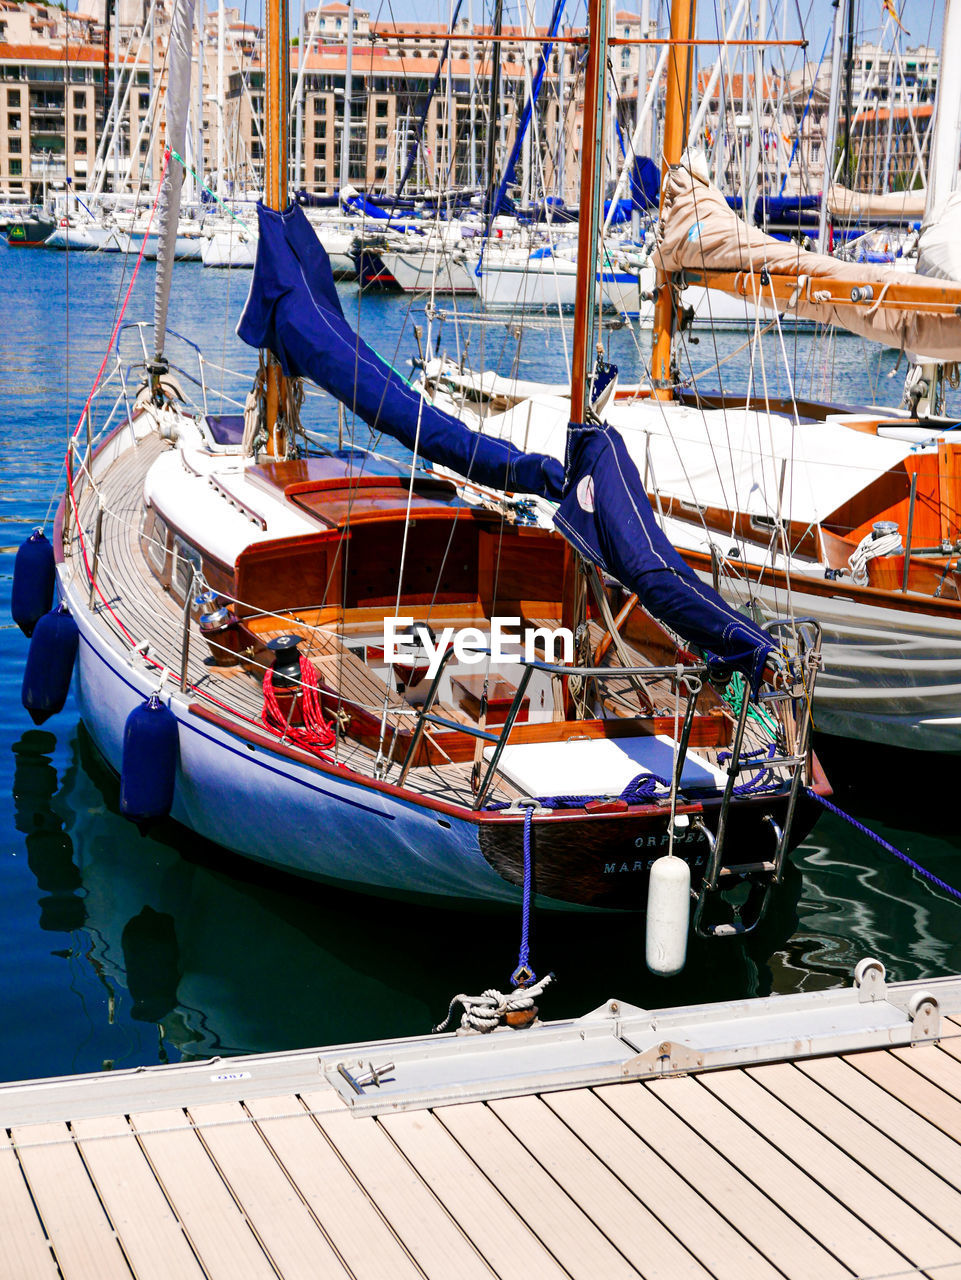 nautical vessel, mode of transportation, water, transportation, moored, rope, day, nature, no people, harbor, outdoors, sea, wood - material, sunlight, travel, blue, sailboat, pier, sailing, yacht, fishing boat, rigging